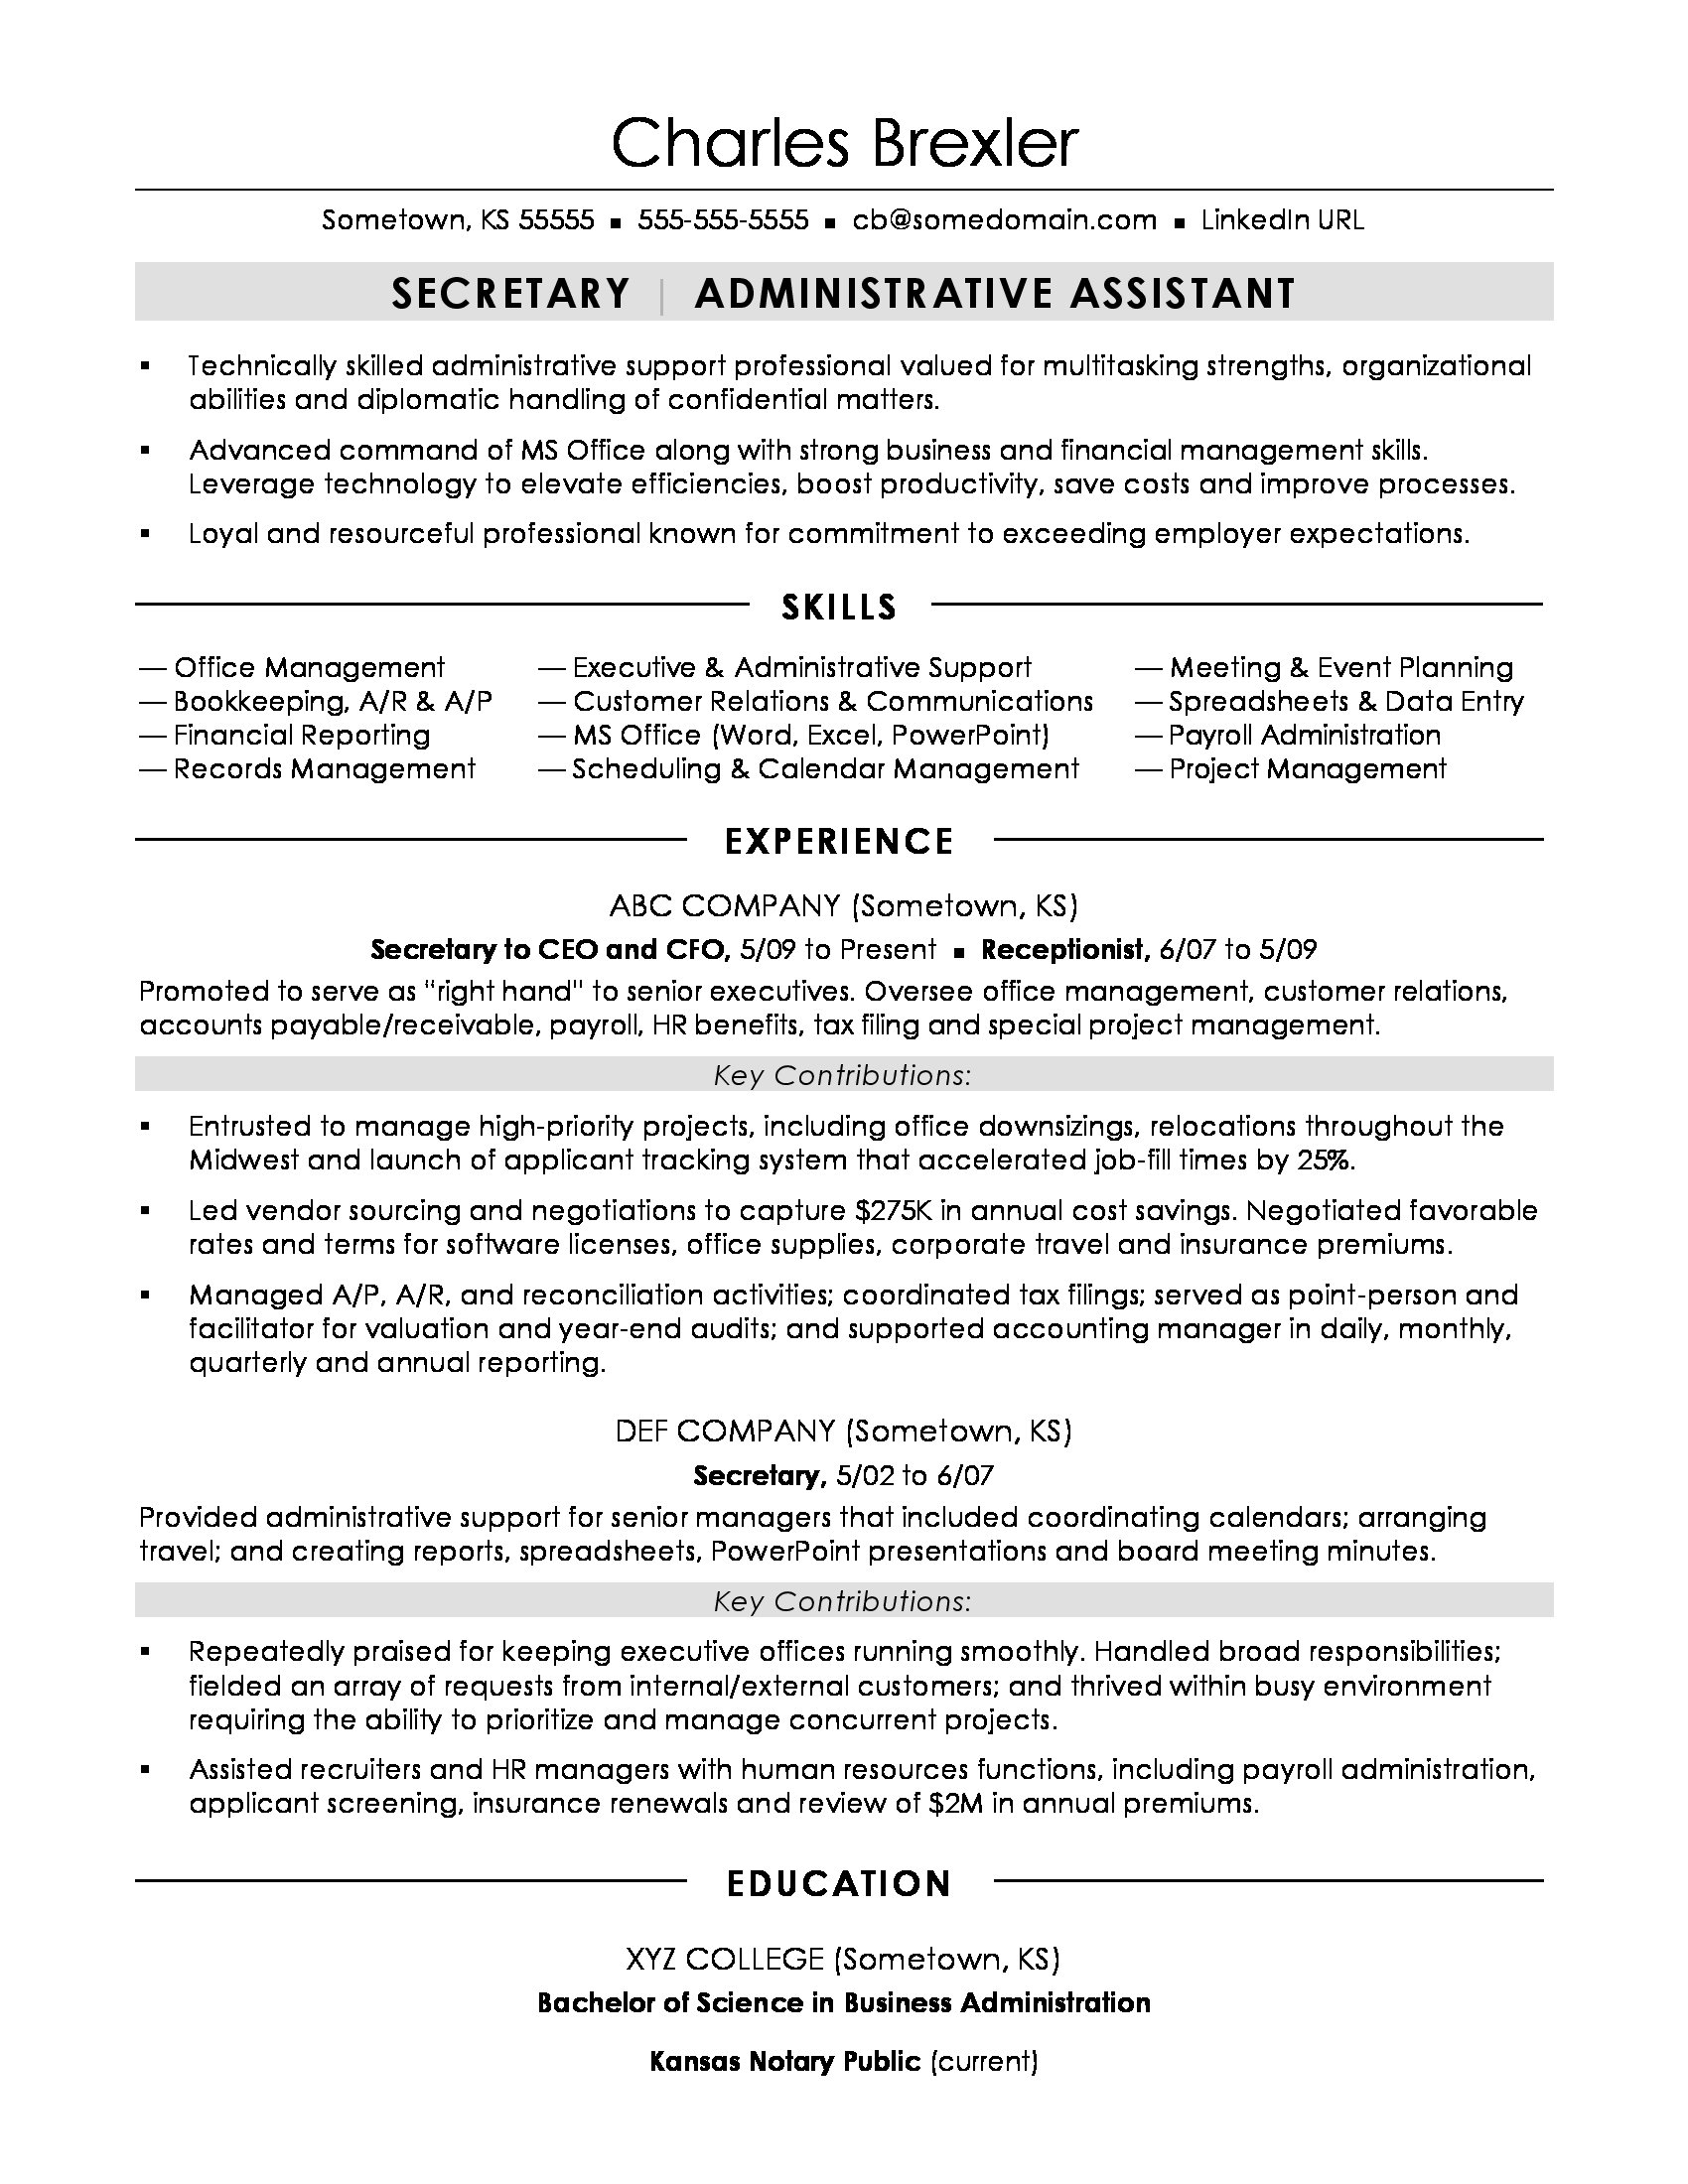 secretary resume sample monster skills and abilities for examples experienced python Resume Skills And Abilities For A Resume Examples